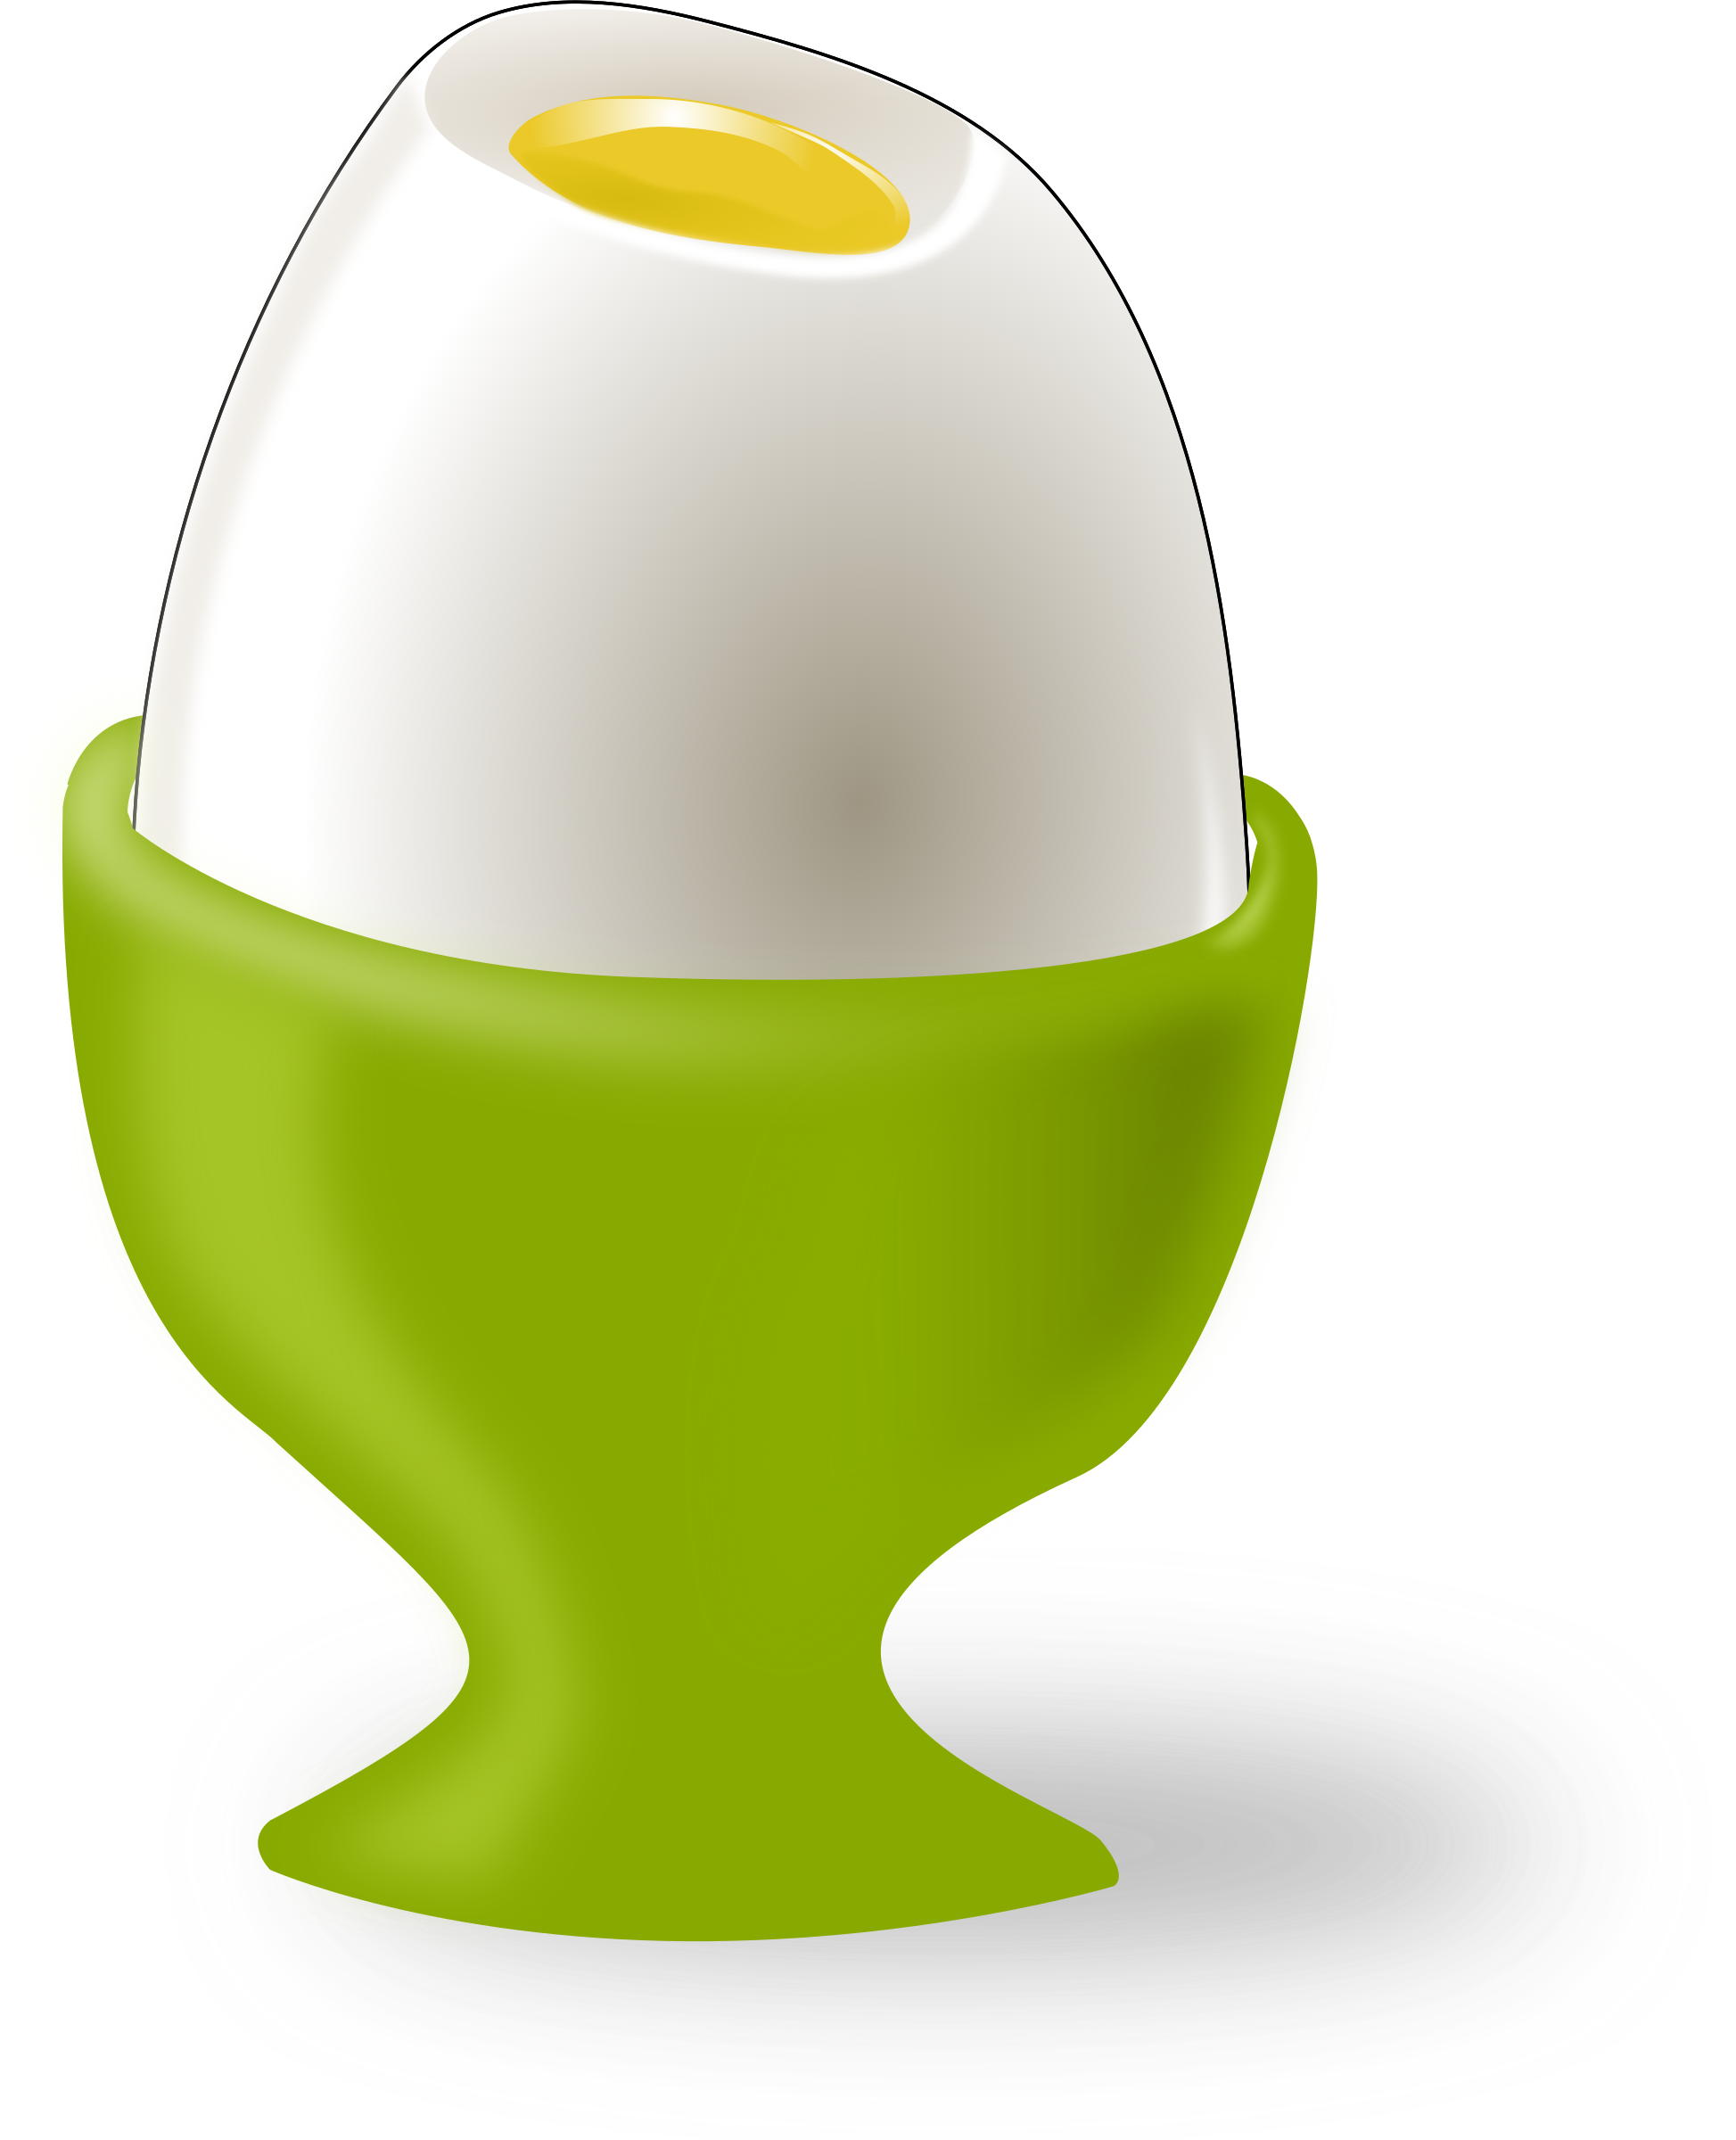 Egg in Cup Vector Clipart.